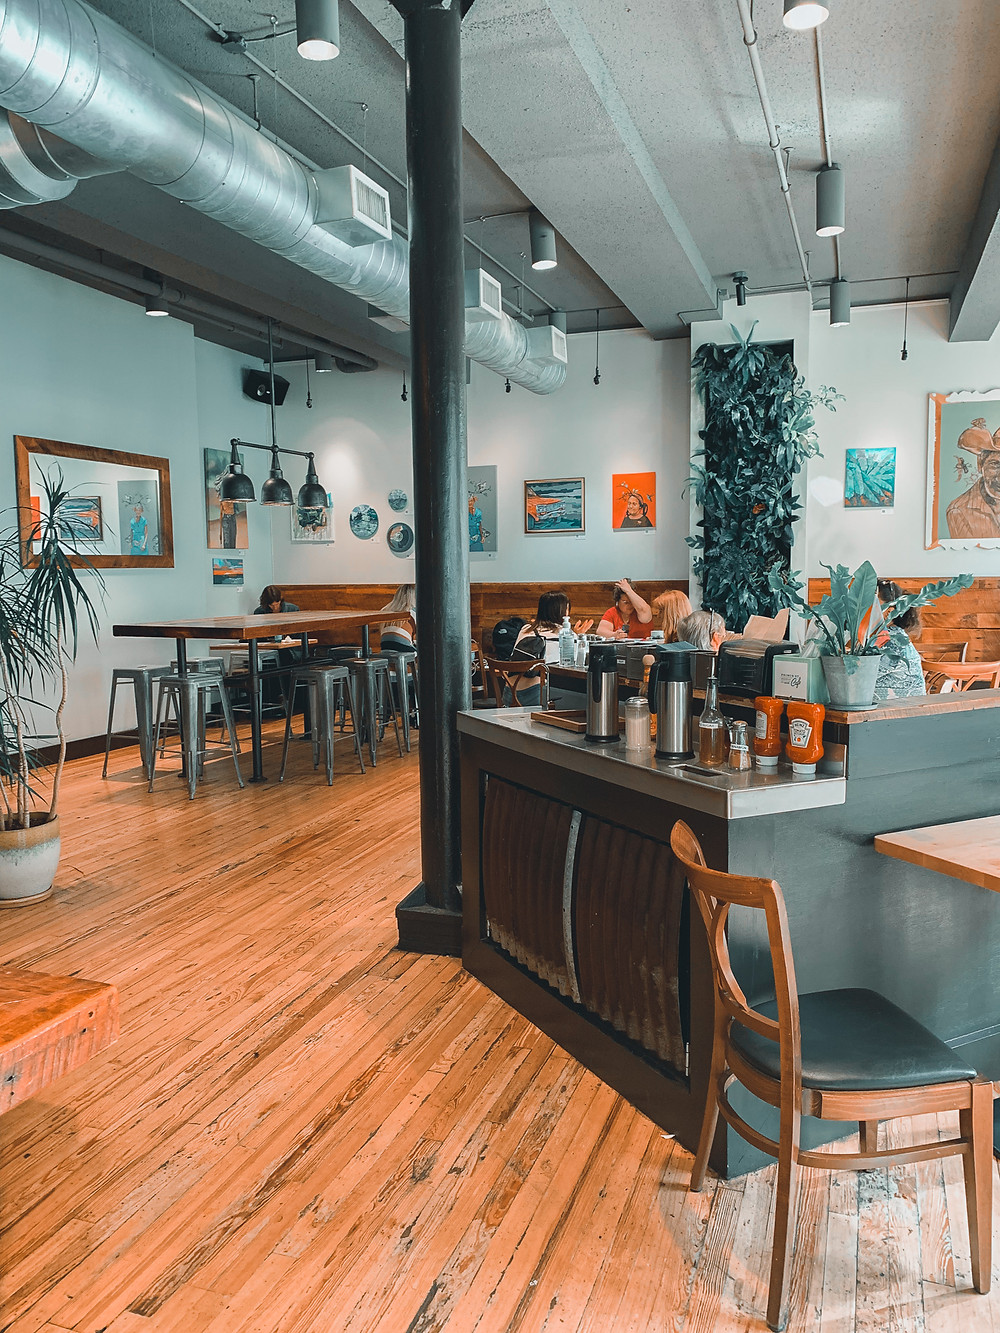 Prince Street Cafe, cafe dining room, wood chair with black seat, counter, wood floors, white walls, tables